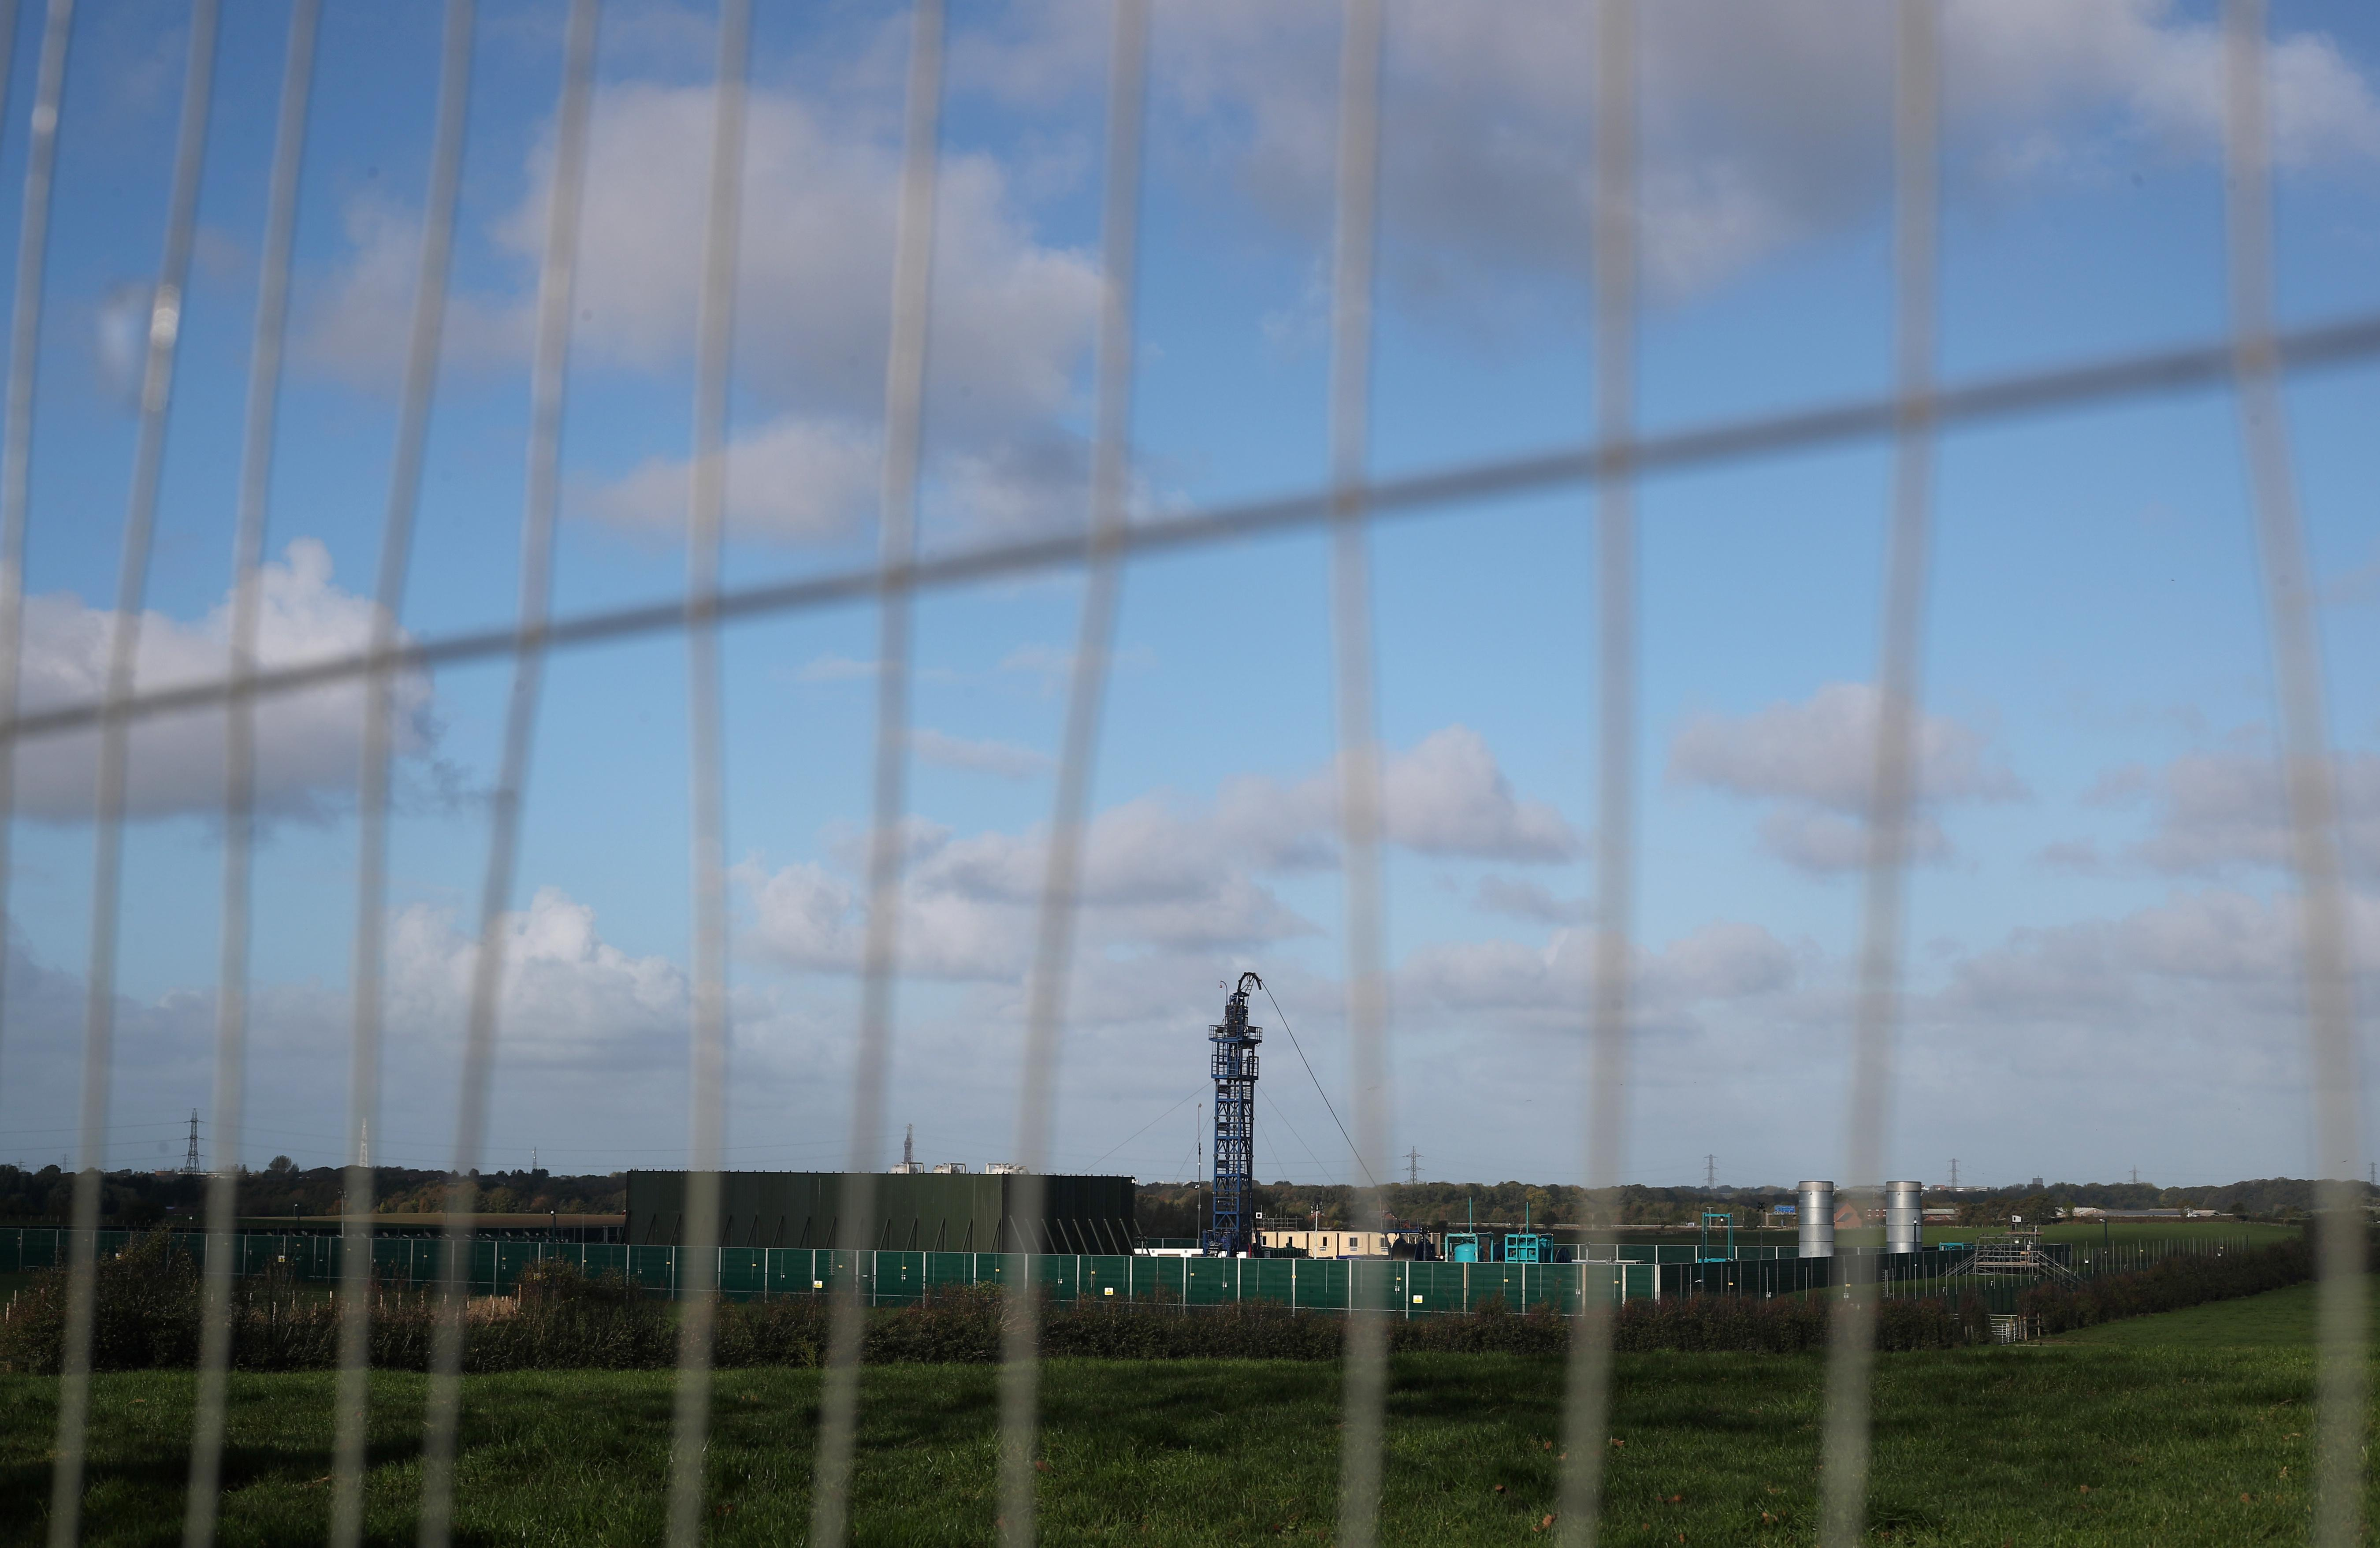 Cuadrilla says 'micro seismic event' occurred at fracking site near Blackpool